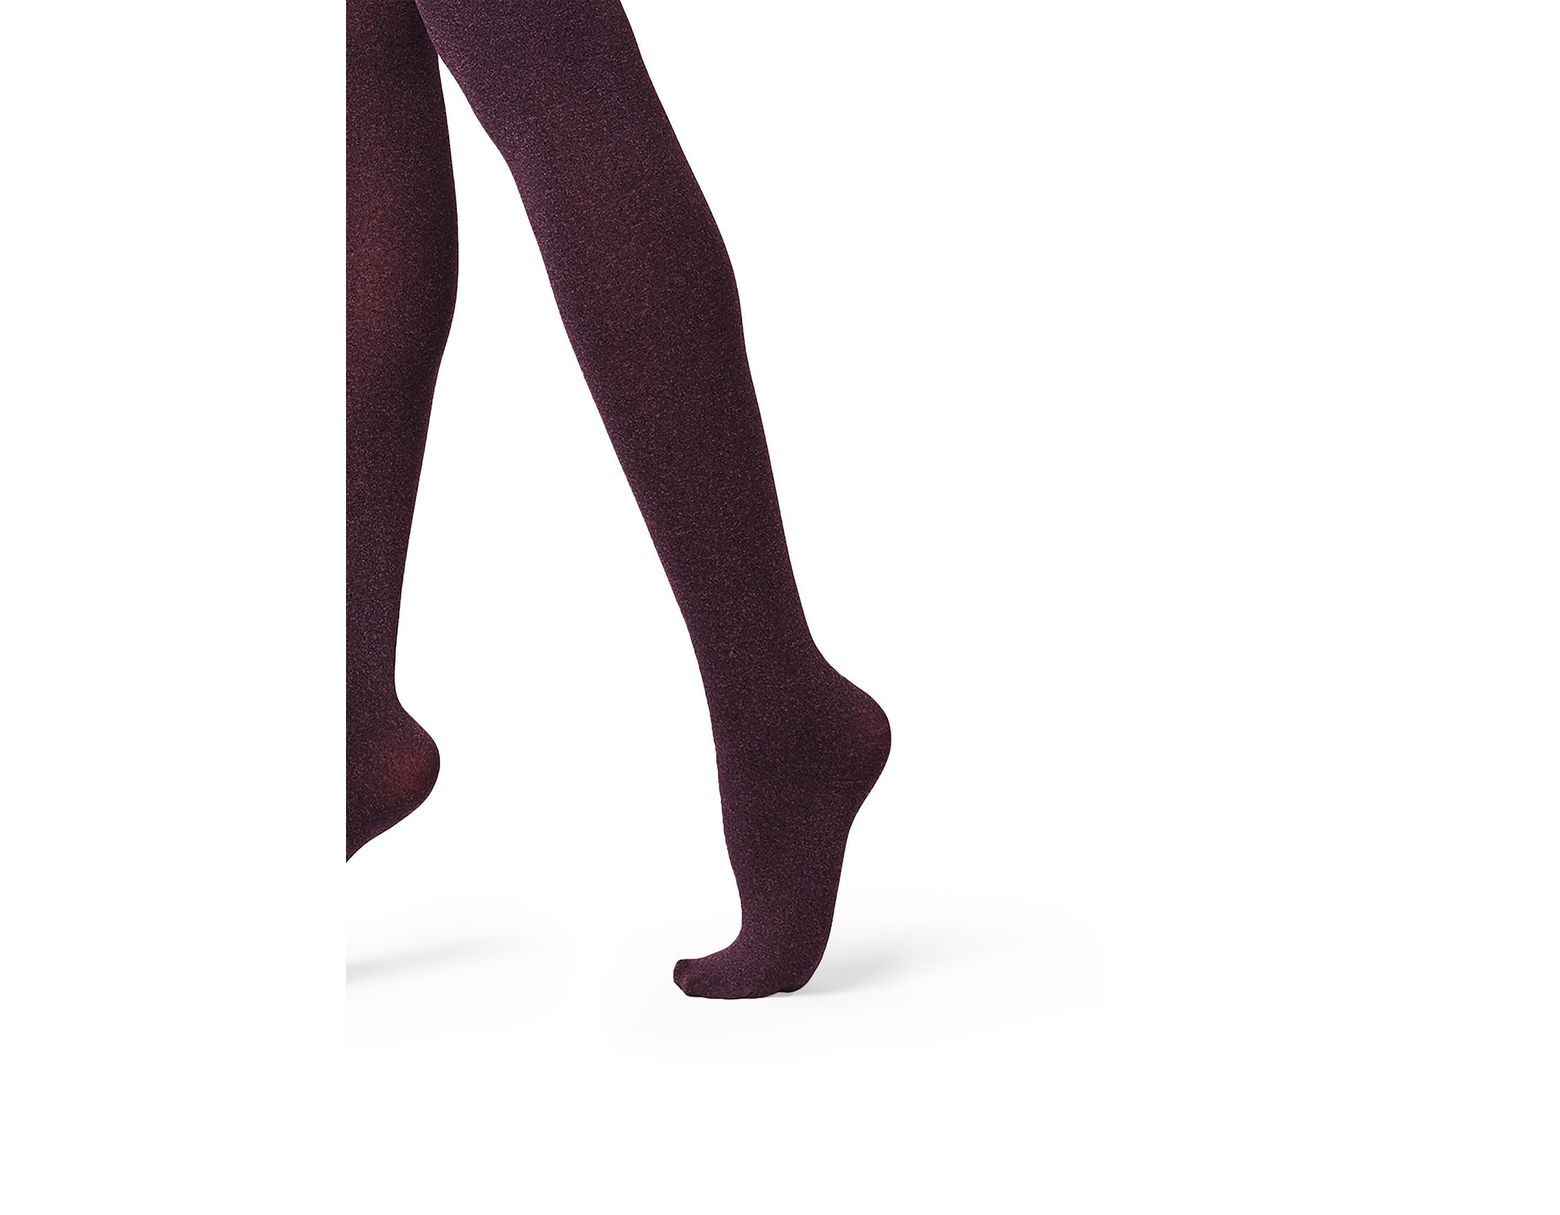 molto carino materiali di alta qualità davvero comodo Women's Purple Super Opaque Tights With Cashmere